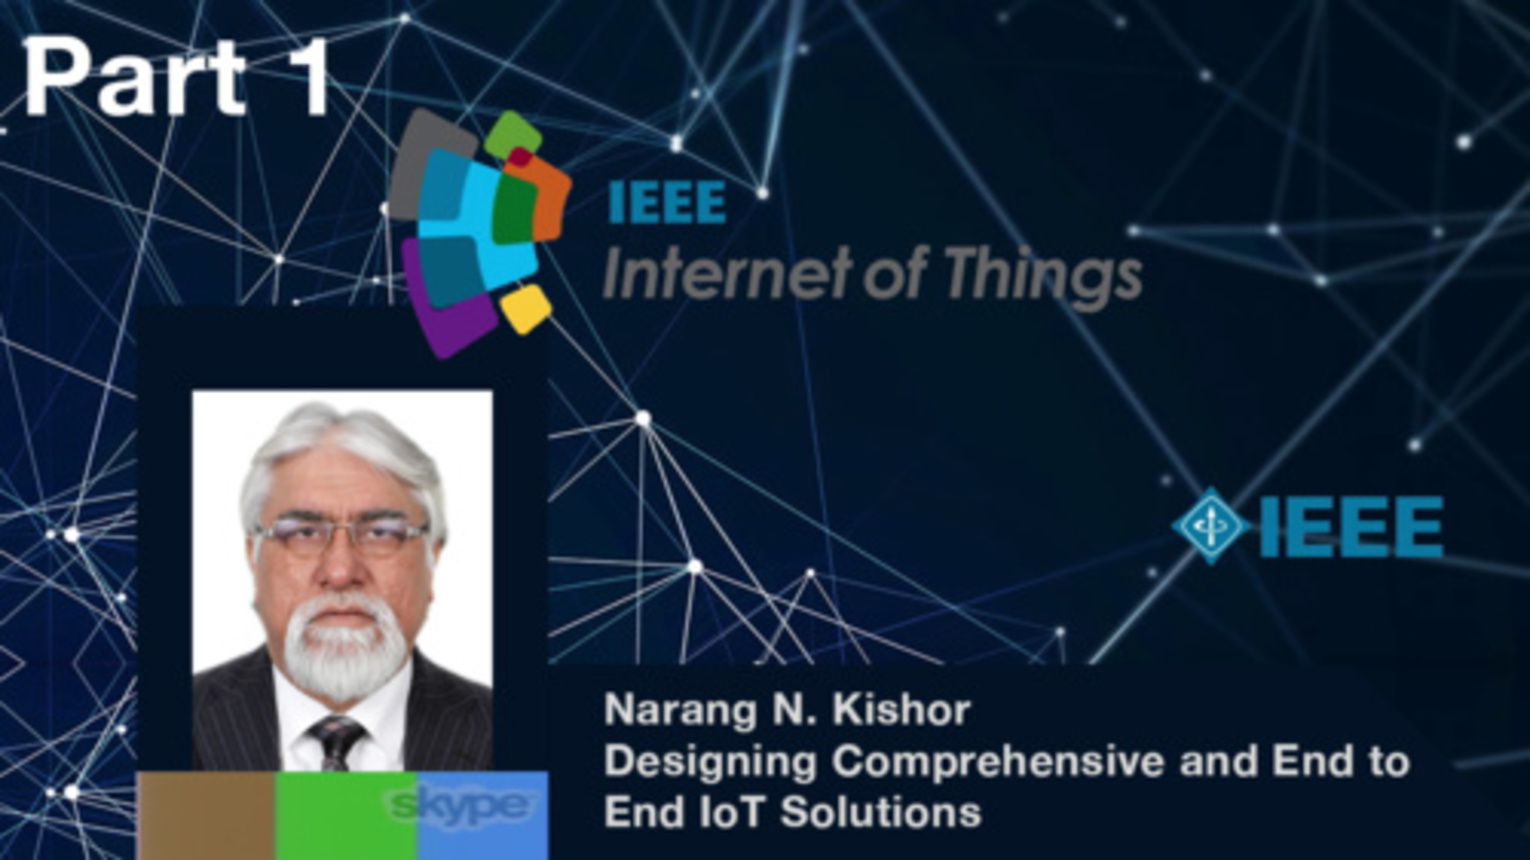 Part 1: Designing Comprehensive and End to End IoT Solutions; Challenges, Opportunities, and Approaches to Develop New IPs - Narang N. Kishor, IEEE WF-IoT 2015